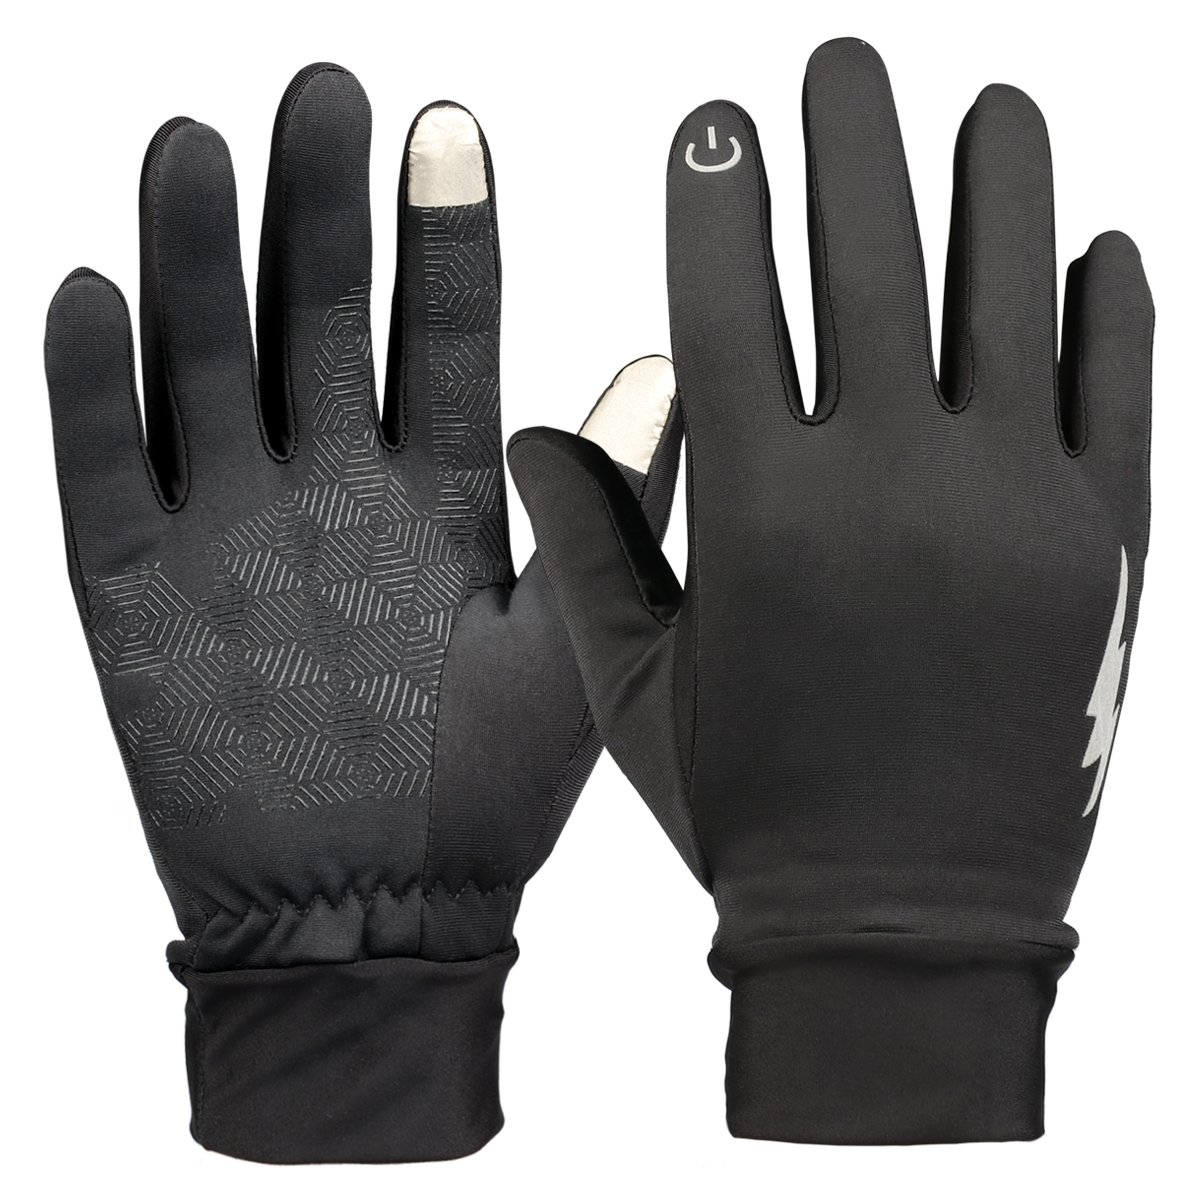 Winter Gloves, Natple Touch Screen Gloves Thermal Gloves Driving Gloves for Men and Women